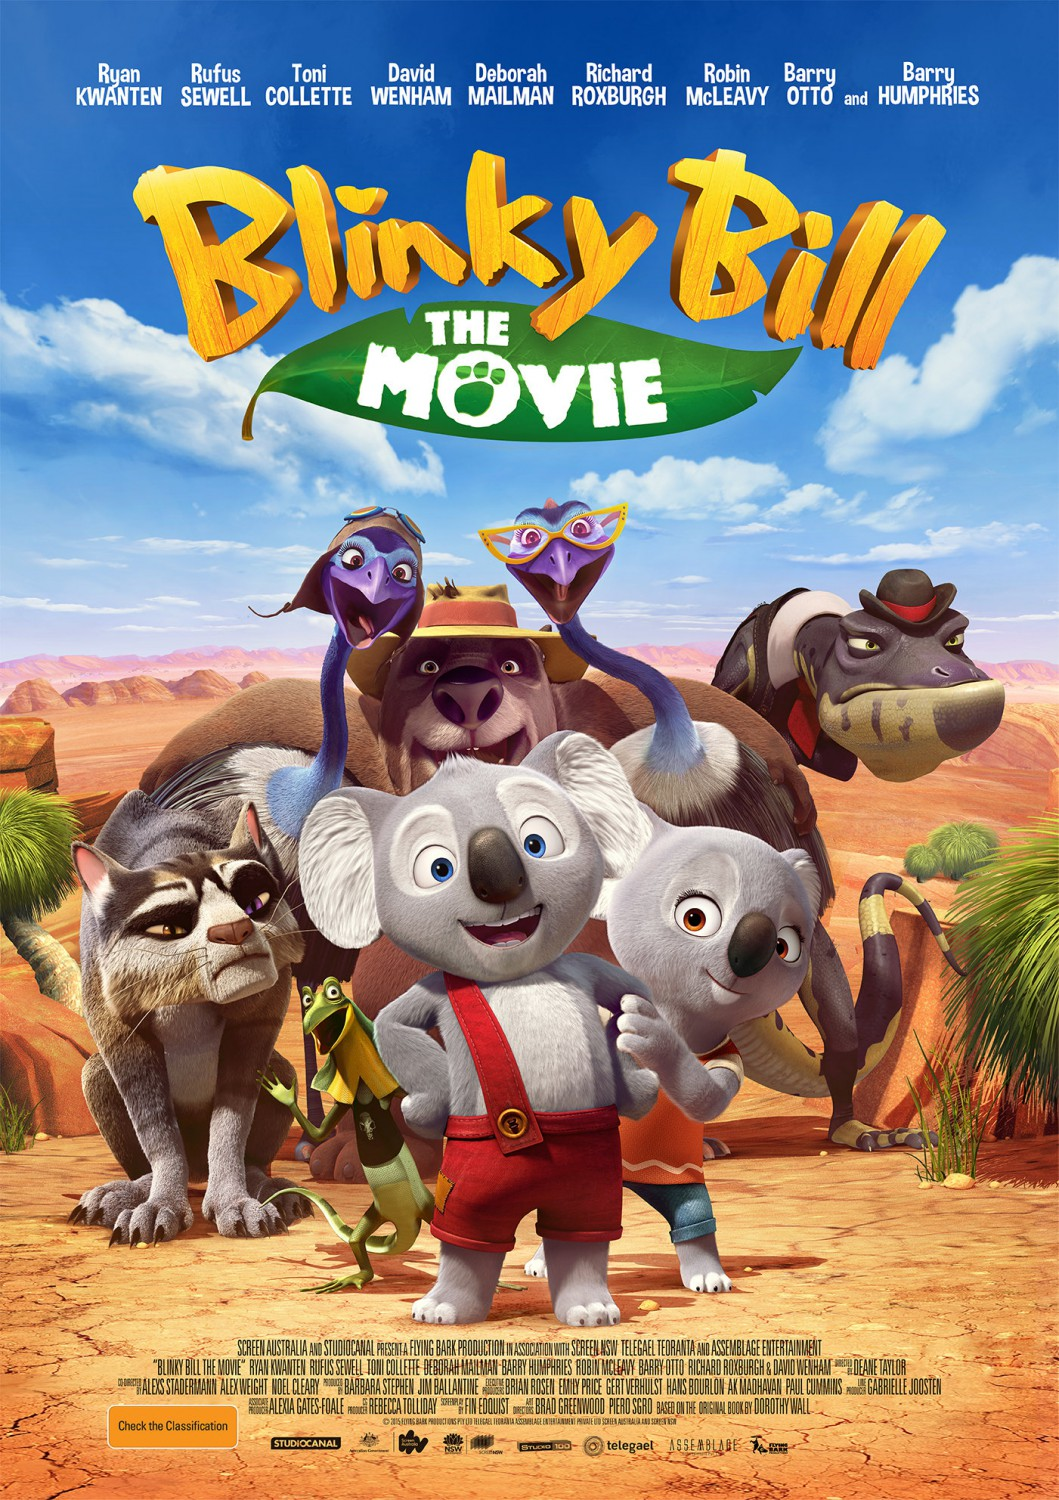 BLINKY BILL THE MOVIE - Blinky Bill (voiced by Ryan Kwanten) is a little koala with a big imagination. An adventurer at heart, he dreams of leaving the little town of Green Patch and following in his missing father's footsteps. When Blinky discovers a mysterious marker that hints at his Dad's whereabouts, he embarks on a journey that takes him beyond the boundary of Green Patch and into the wild and dangerous Outback. He quickly makes friends with Nutsy, a zoo koala, and Jacko, a nervous frill-necked lizard. Pursued relentlessly by a vengeful Cat who has a personal score to settle with Blinky, the trio must learn to work together if they ever want to survive the rugged Australian landscape and find Blinky's father!Year 2015Production Partners Flying Bark Productions, Studio 100, Screen Australia, Screen NSW, Assemblage Entertainment Pirvate Ltd and TelegaelGenre Family